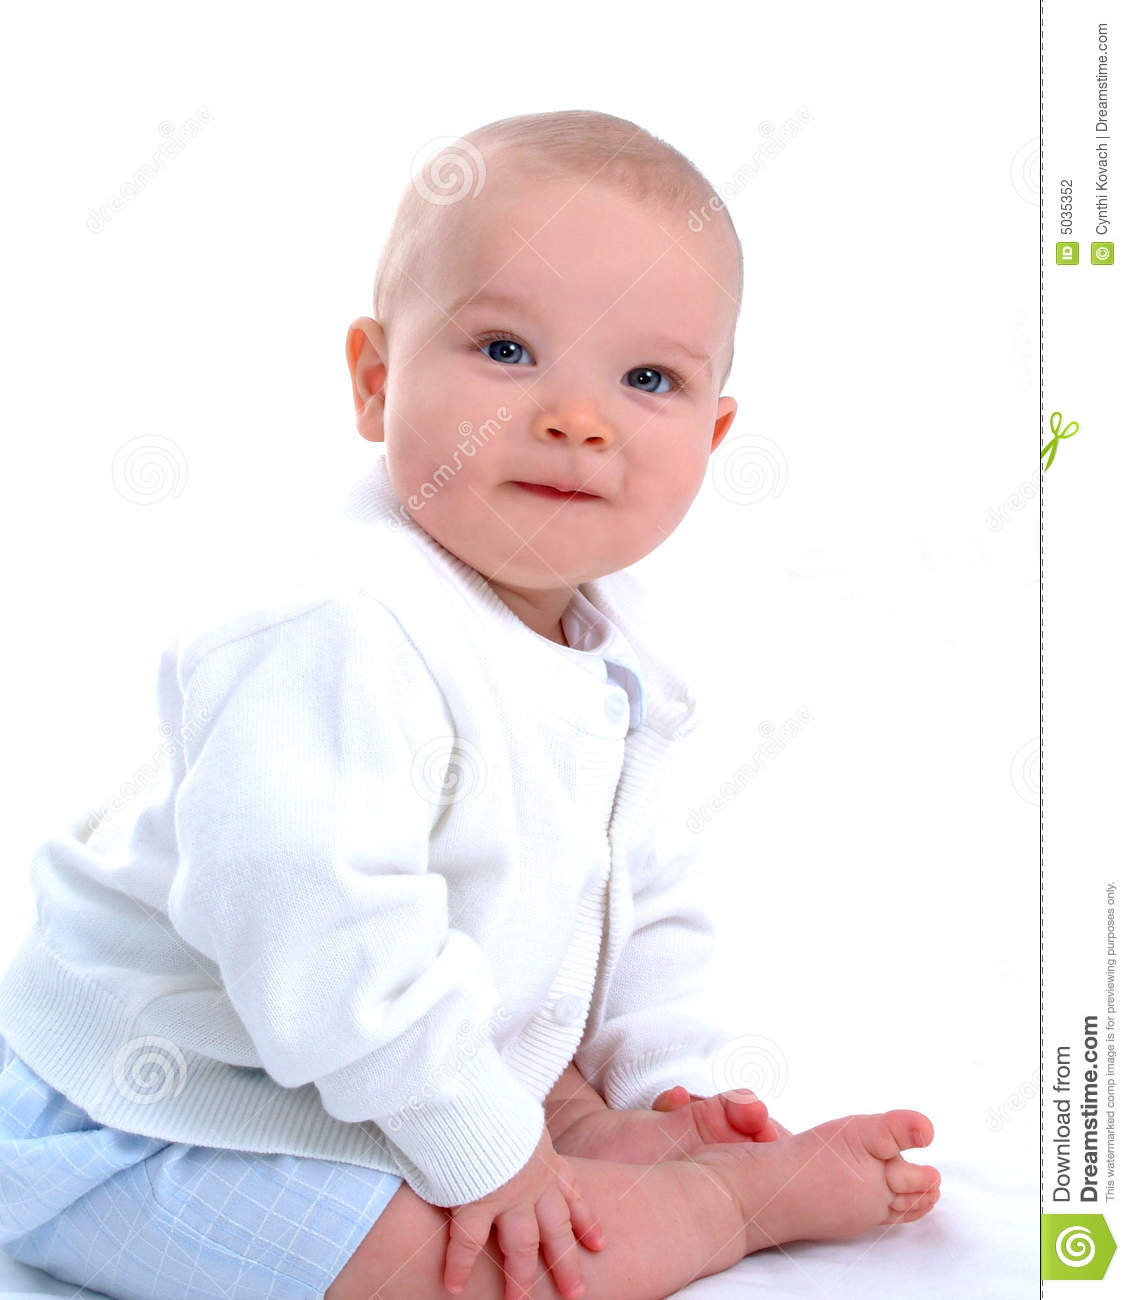 baby boy with dimple stock photo. image of sitting, smiling - 5035352